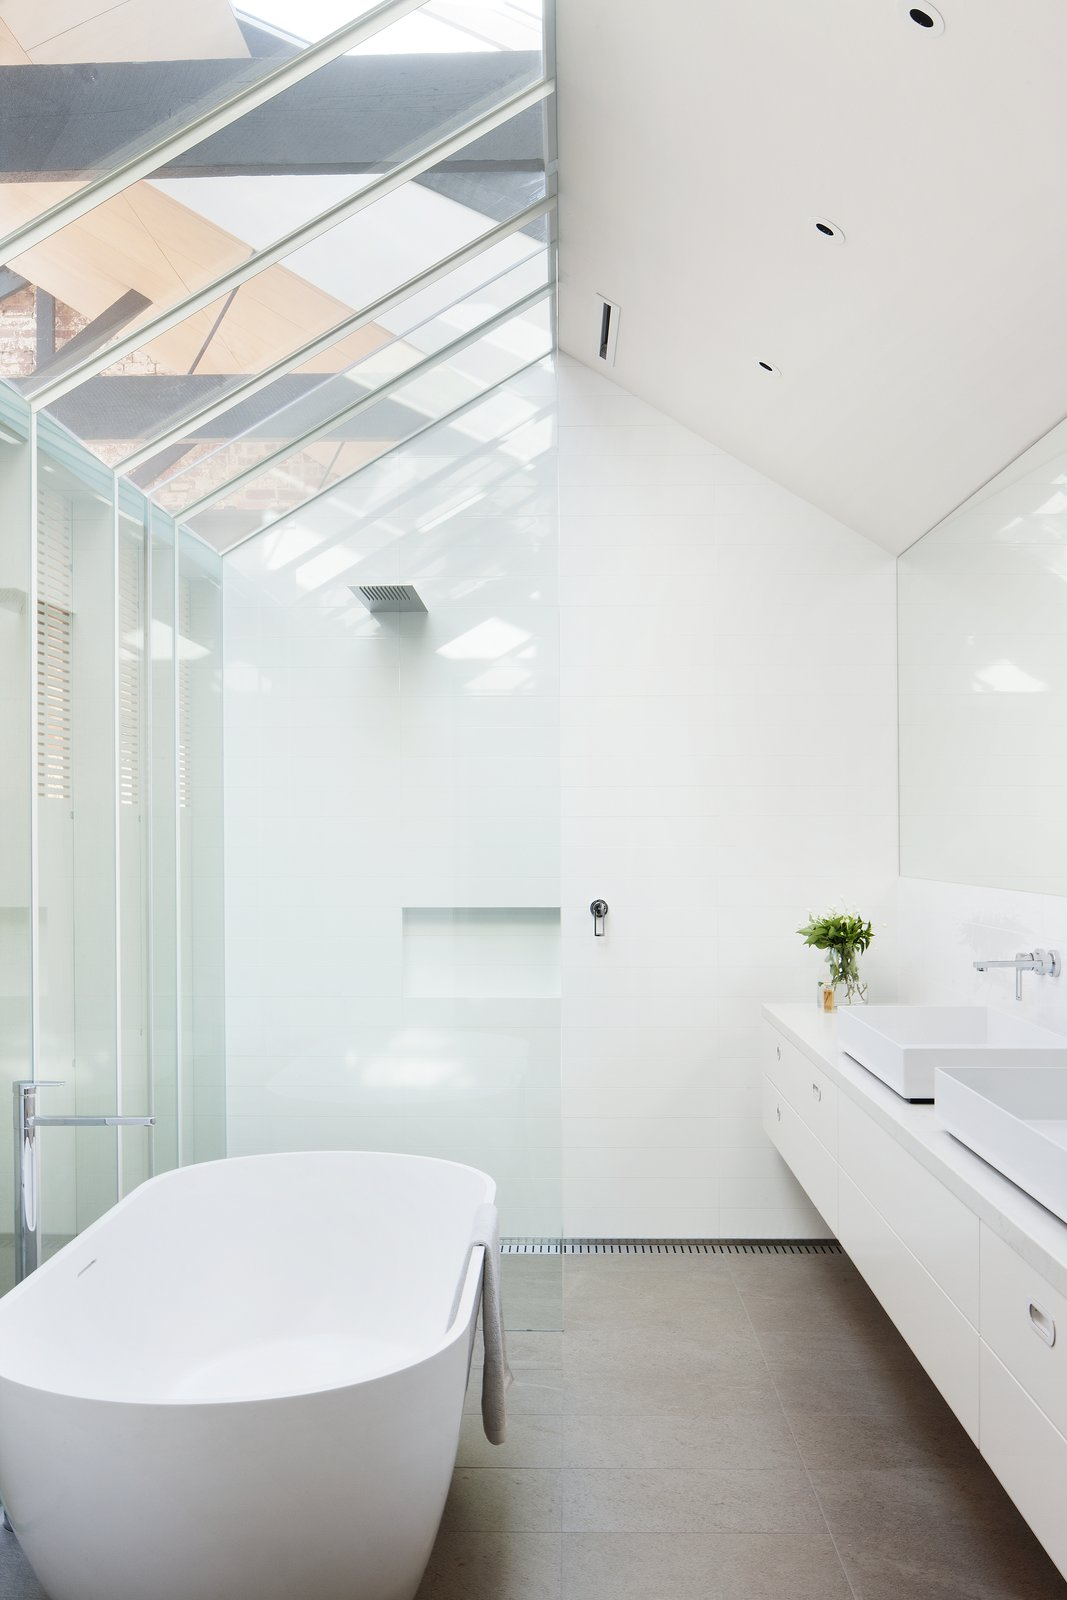 """A critical aspect of the project was the incorporation of natural light and ventilation within a broad footprint,"" Simpson says. Conventionally private areas, like bedrooms and bathrooms, are therefore reinterpreted with more openness in mind. For instance, this bathroom's skylights mirror those found throughout the rest of the property. The bathtub, basins, and showerhead were all purchased at the Australian retailer Reece.  Water Factory by Kelly Dawson"